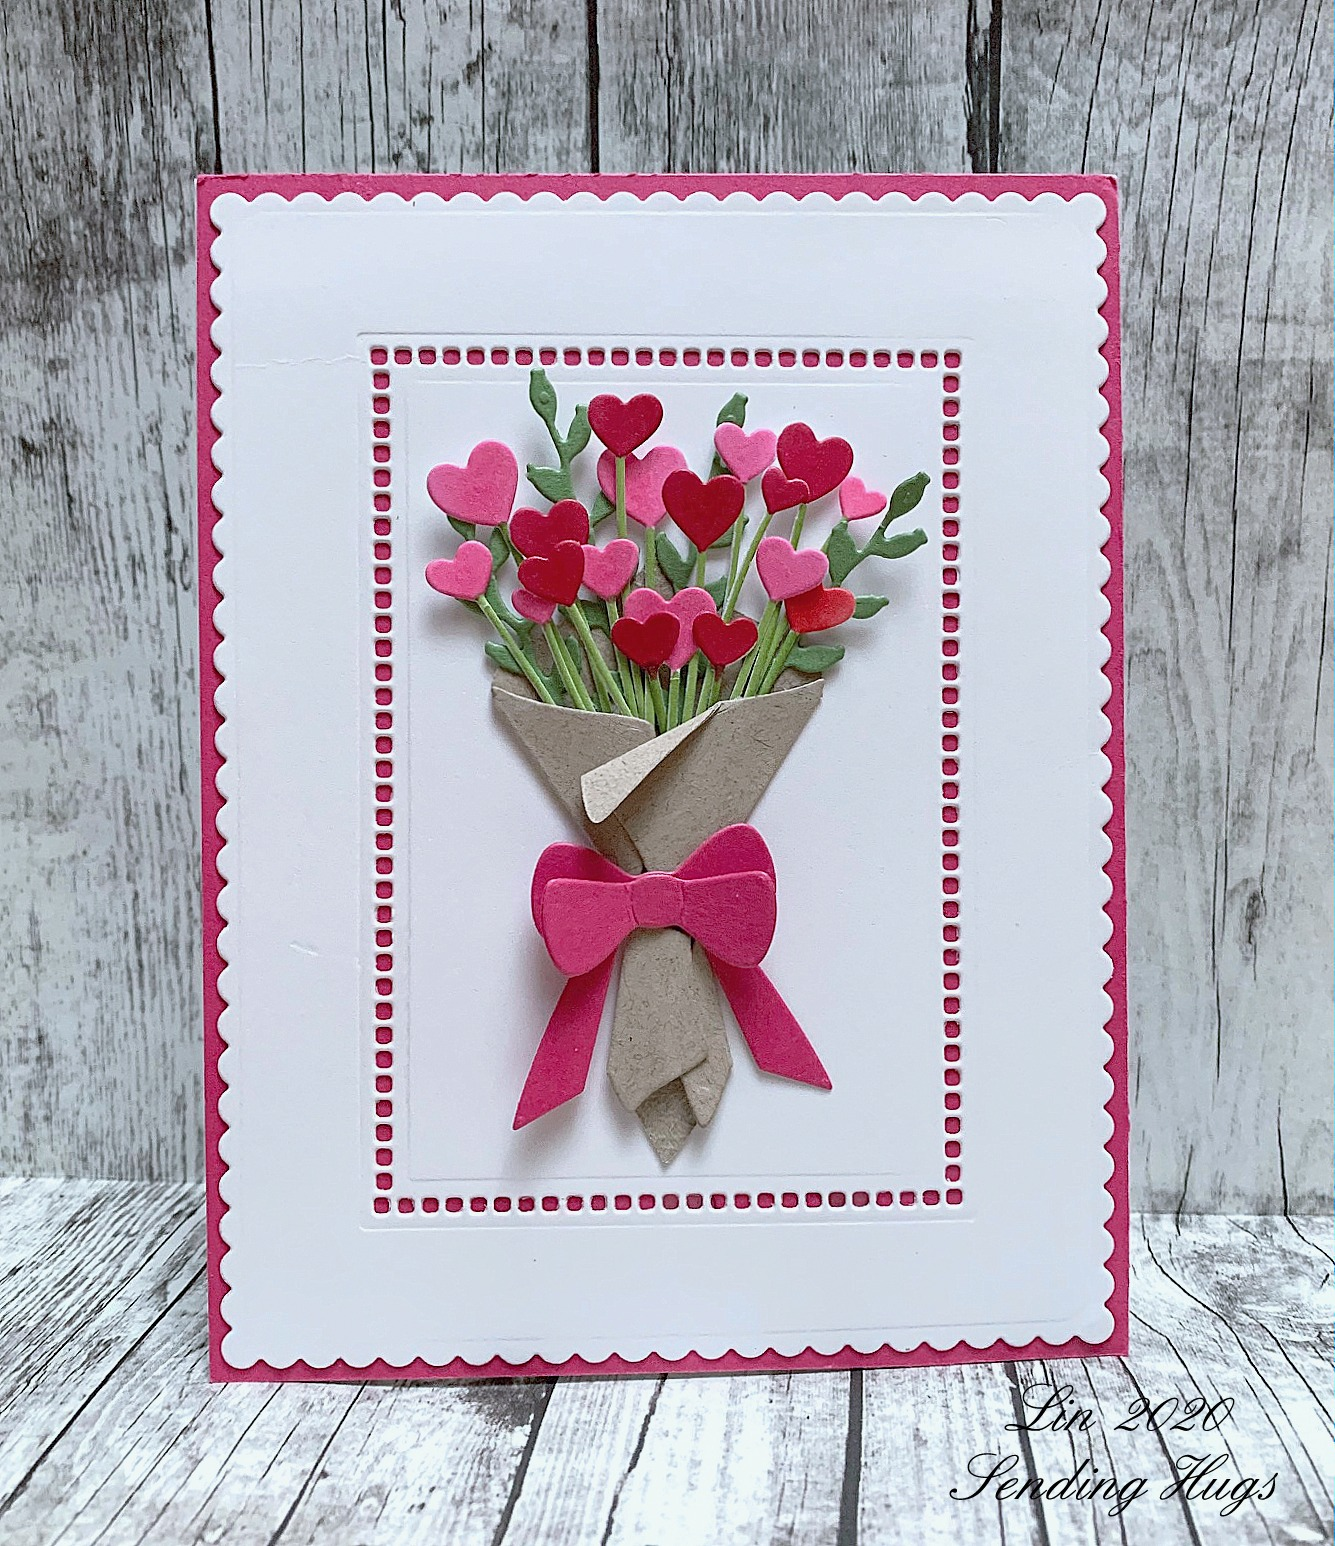 Sending Hugs: A Bouquet of Hearts for Valentine's Day